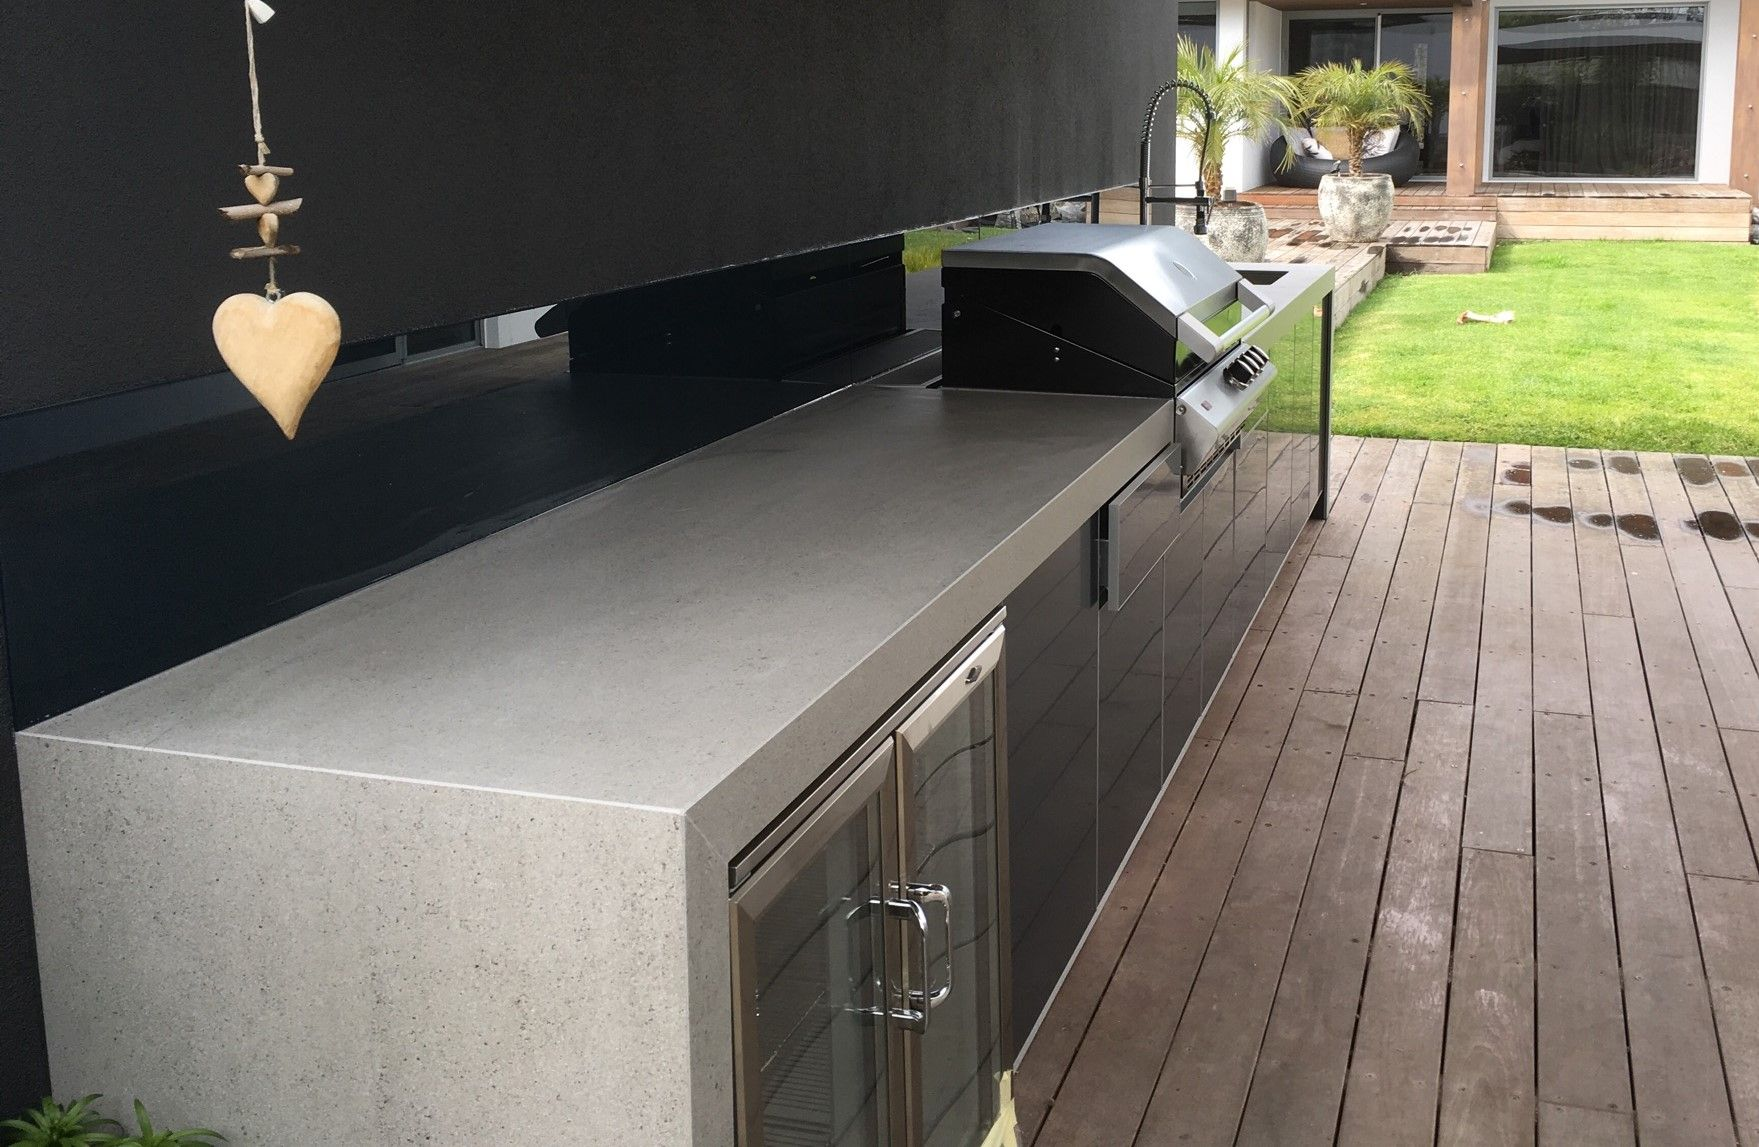 Pin By Limetree Alfresco On Ziegler Brown Turbo Bbq Outdoor Kitchens Outdoor Barbeque Area Outdoor Kitchen Outdoor Bbq Kitchen